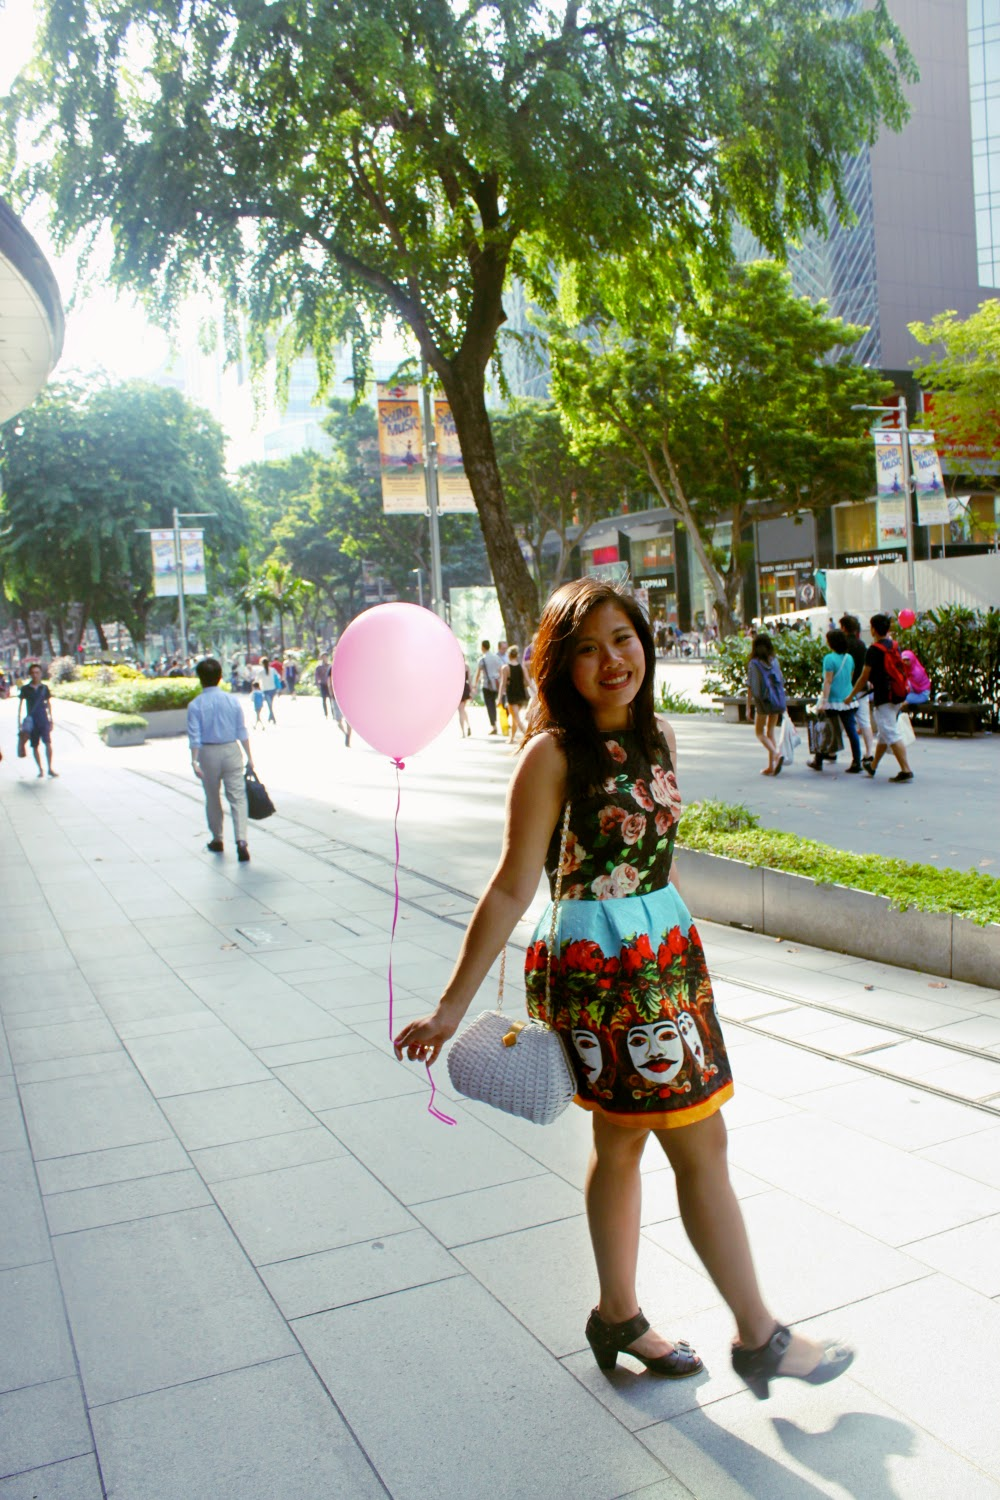 21st birthday, ootd, photography, street style, lookbook, singapore blogger, xincerely